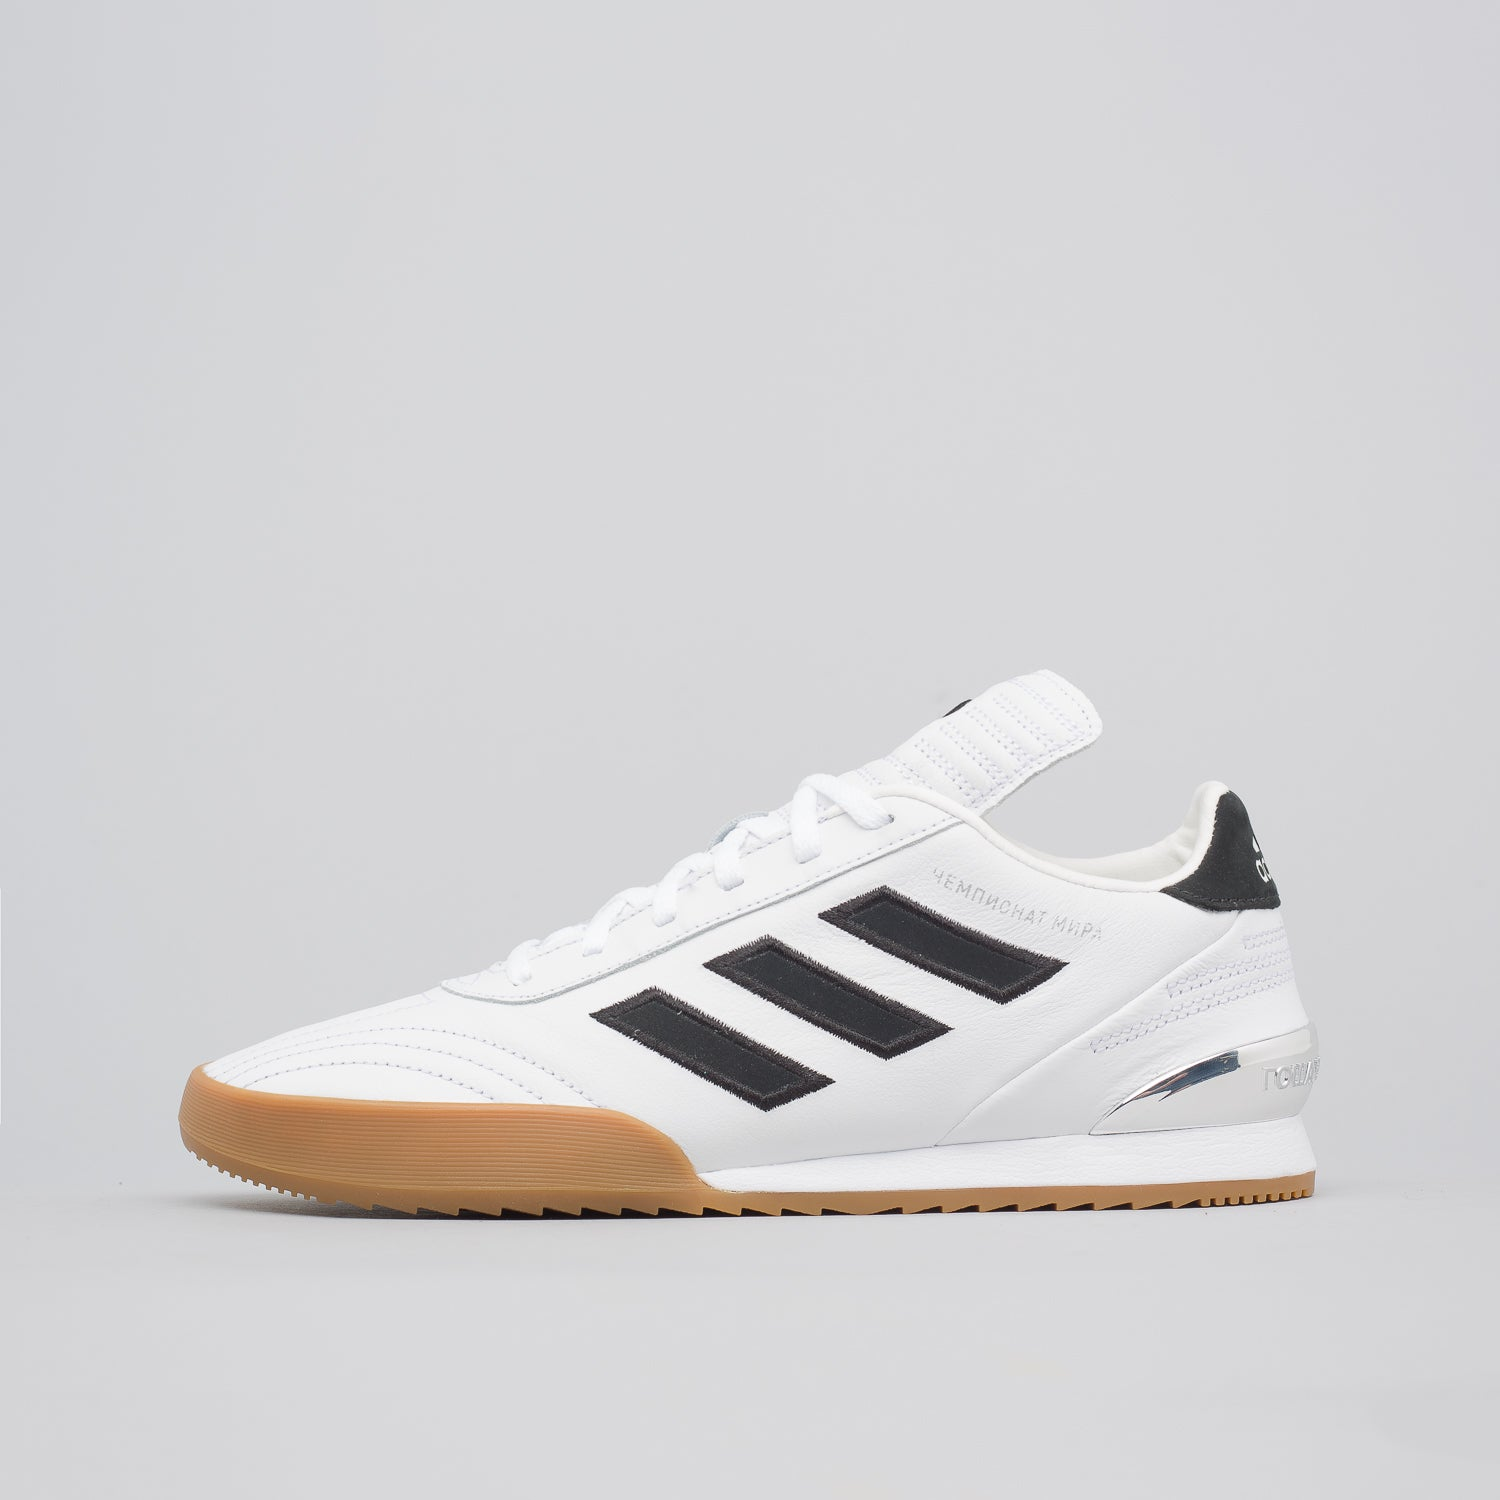 x adidas Copa WC Shoe in White